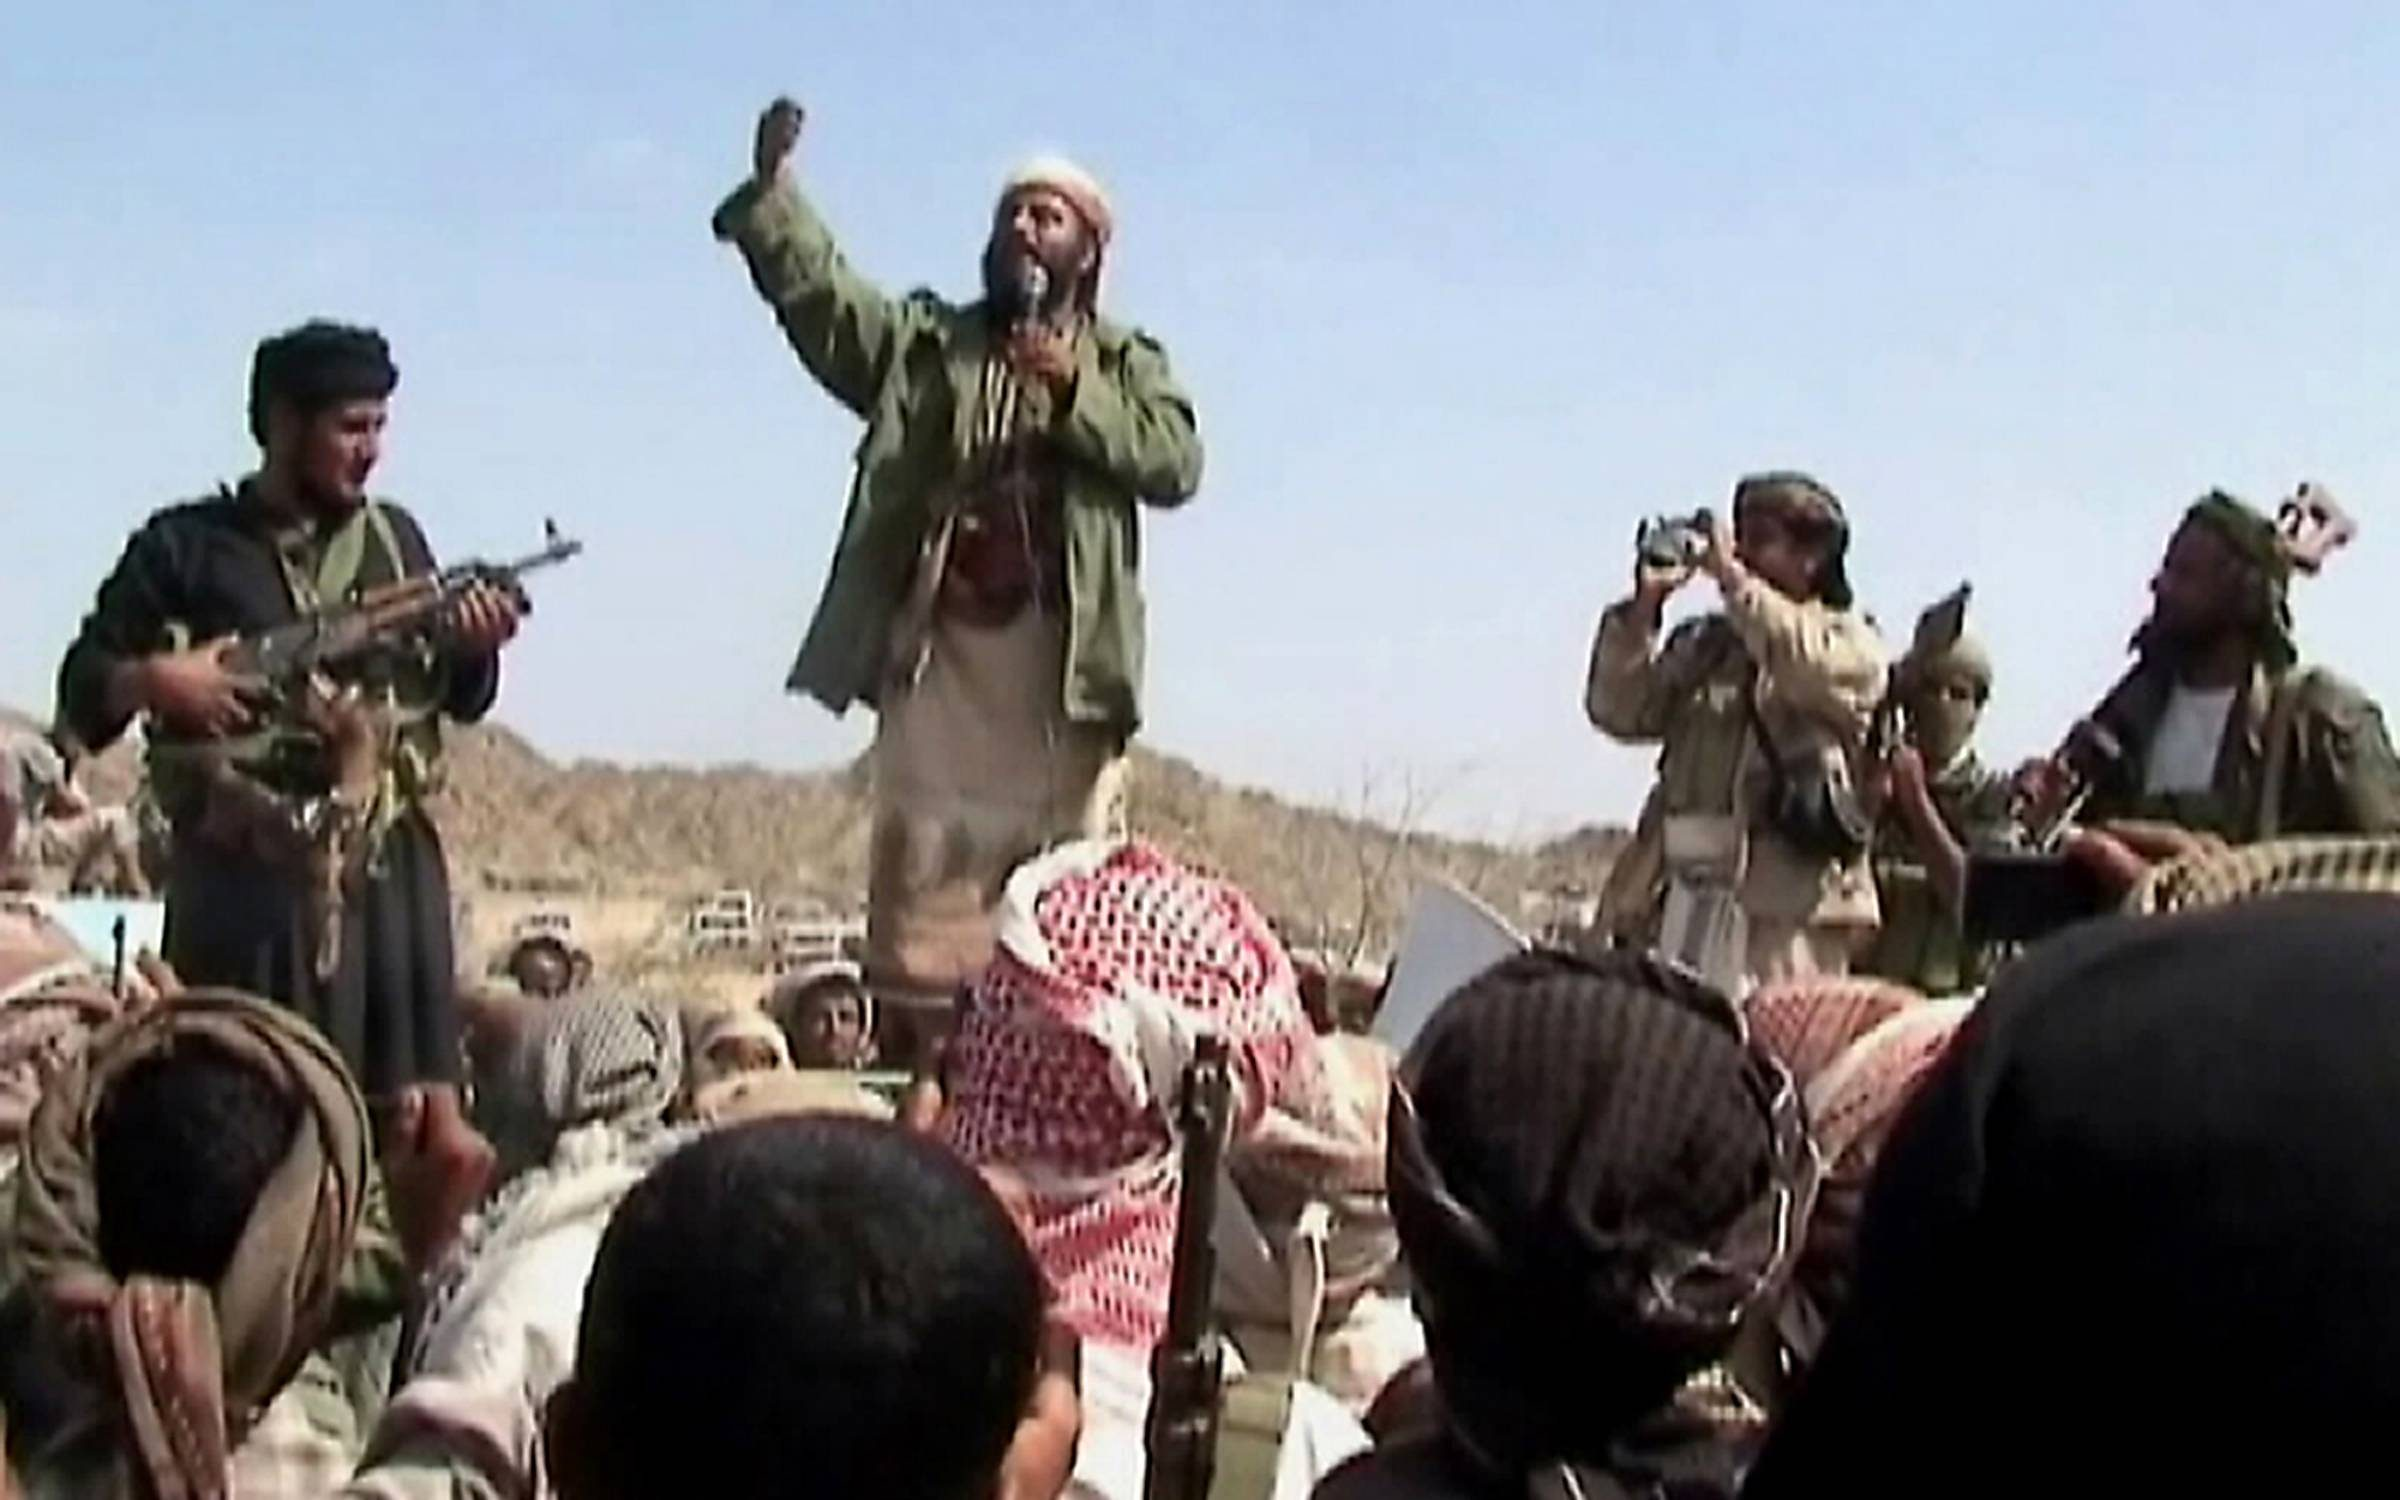 A man claiming to be an Al-Qaeda member addresses a crowd gathered in Yemen's southern province of Abyan on December 22, 2009. Men claiming to be Al-Qaeda members have vowed to avenge those killed in a Yemeni air strike on one of the group's training camps in southern Yemen, Al-Jazeera television reported. In a short video aired by the pan-Arab satellite channel, a bearded man holding a microphone and flanked by two armed men addressed a crowd gathered in the Abyan province to mourn those killed in the December 17 air raid. AFP PHOTO/STR == BEST QUALITY AVAILABLE == (Photo credit should read -/AFP via Getty Images)